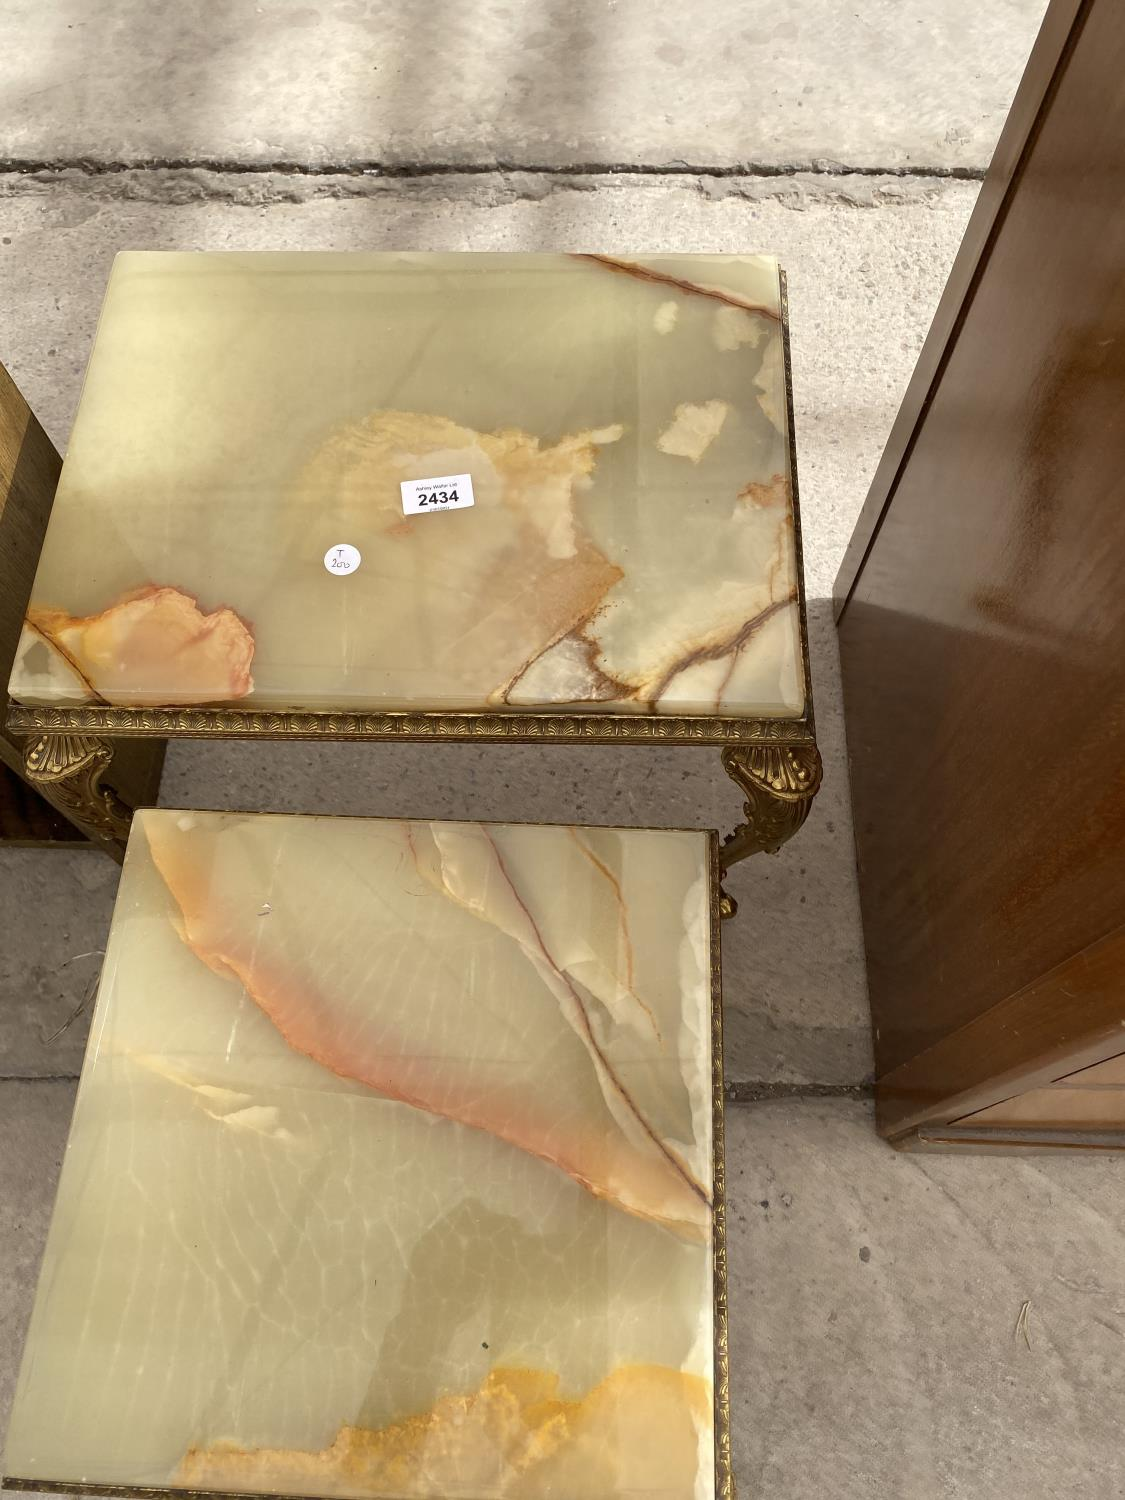 A NEST OF TWO ONYX TABLES - Image 2 of 3